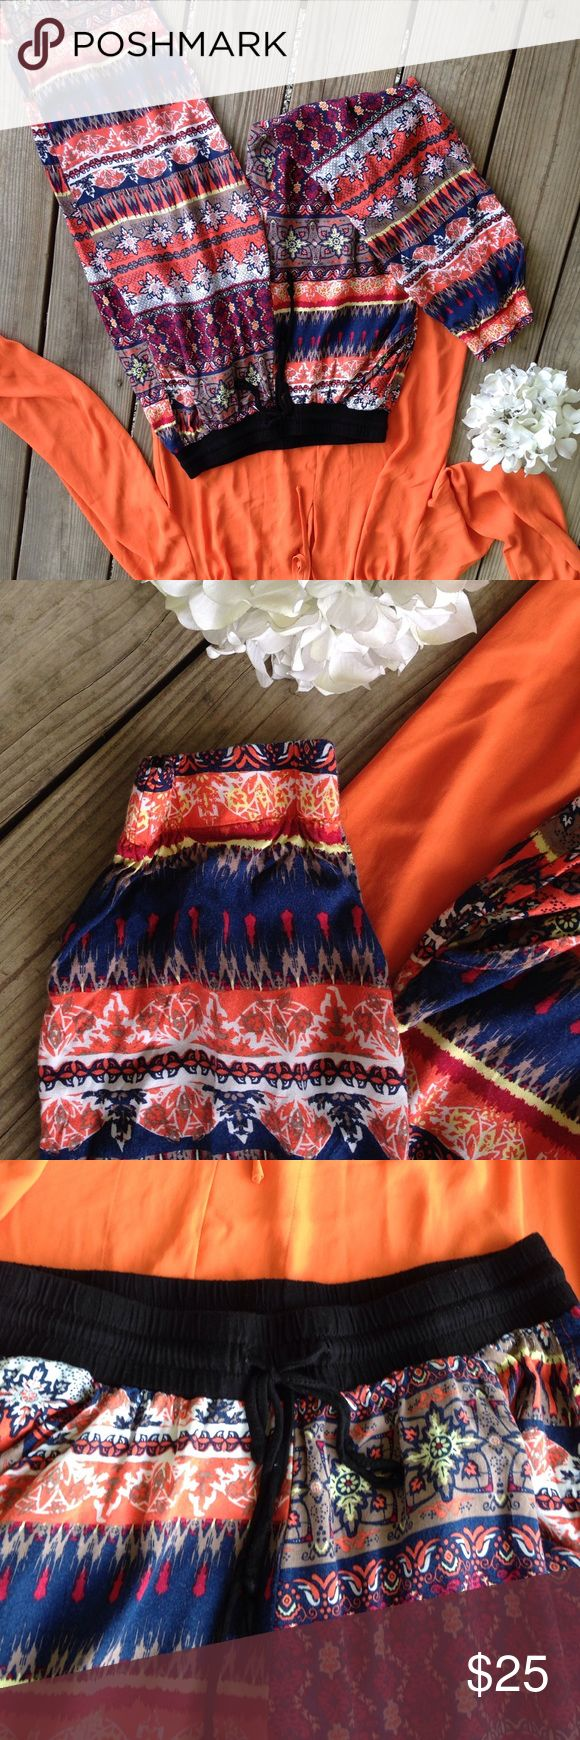 Indian Print Jumper Pants (Elastic Ankles) Medium Size medium, orange, White, Royal, black, brown, maroon make up this Indian print. Elastic bottom cuffs. Drawstring elastic waist. Free gift with purchase Pants Ankle & Cropped